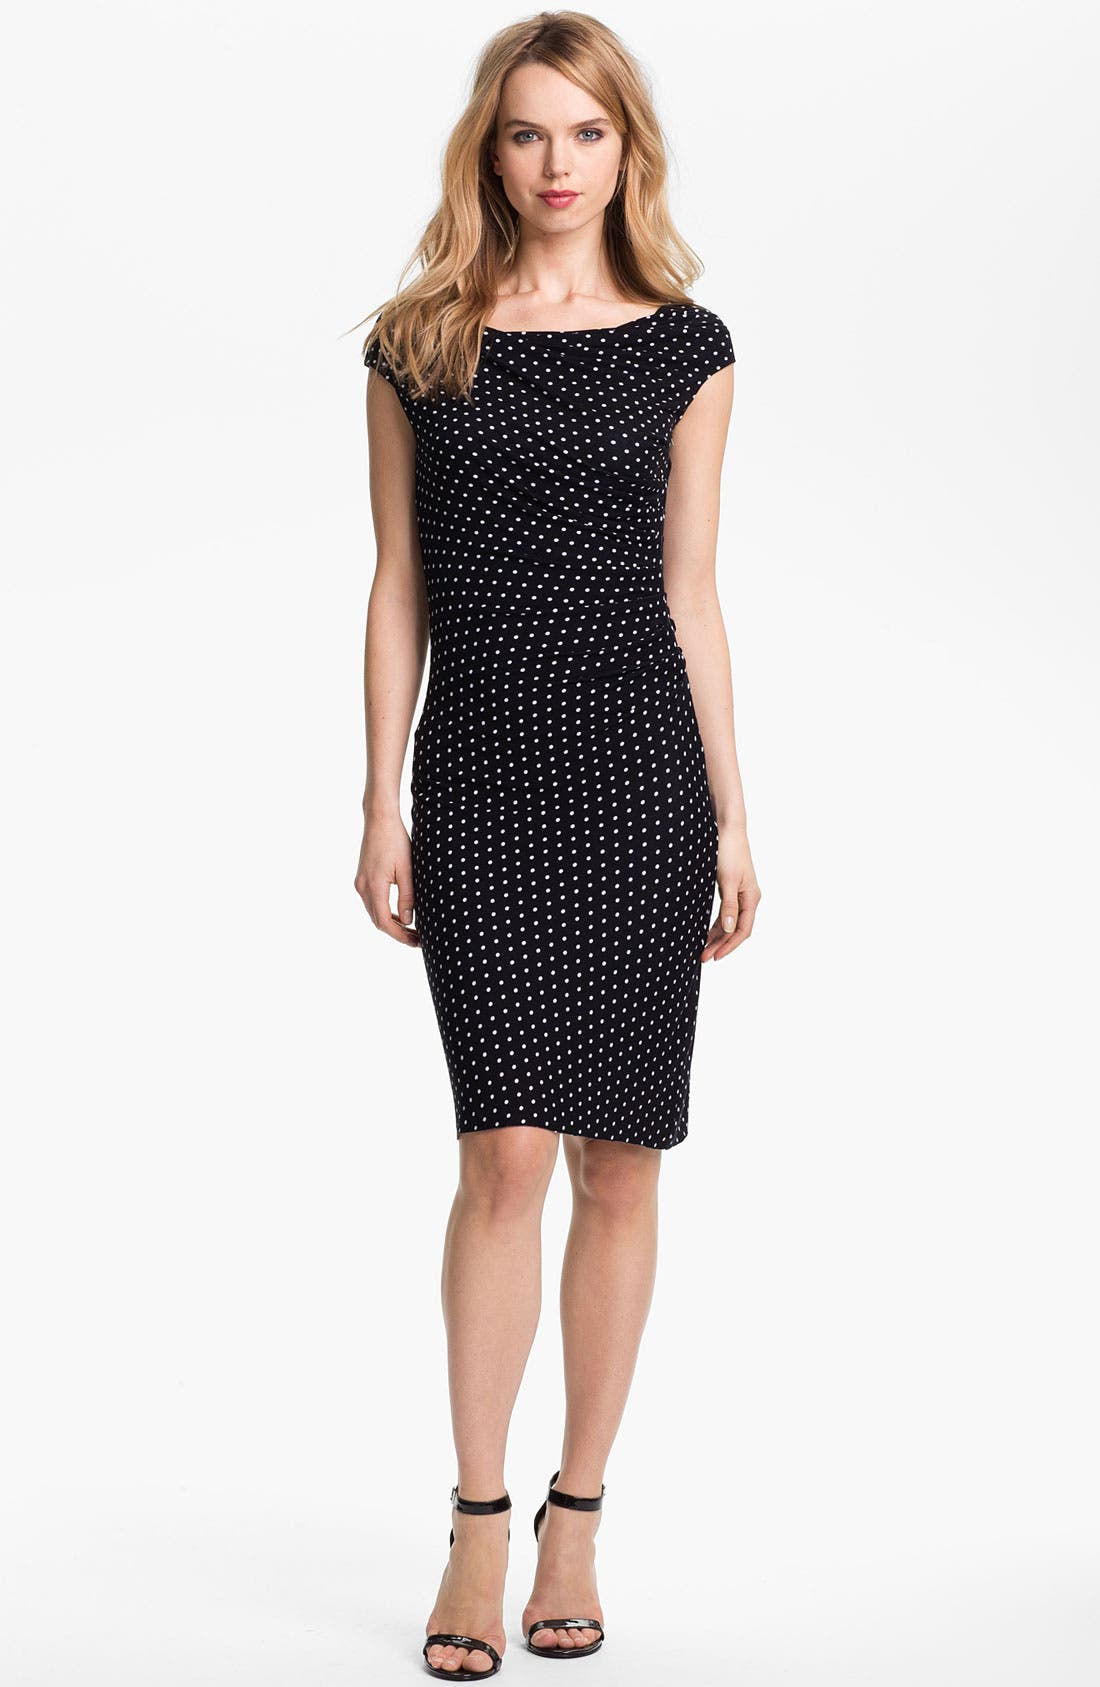 Alternate Image 1 Selected - Vince Camuto Dot Print Ruched Dress